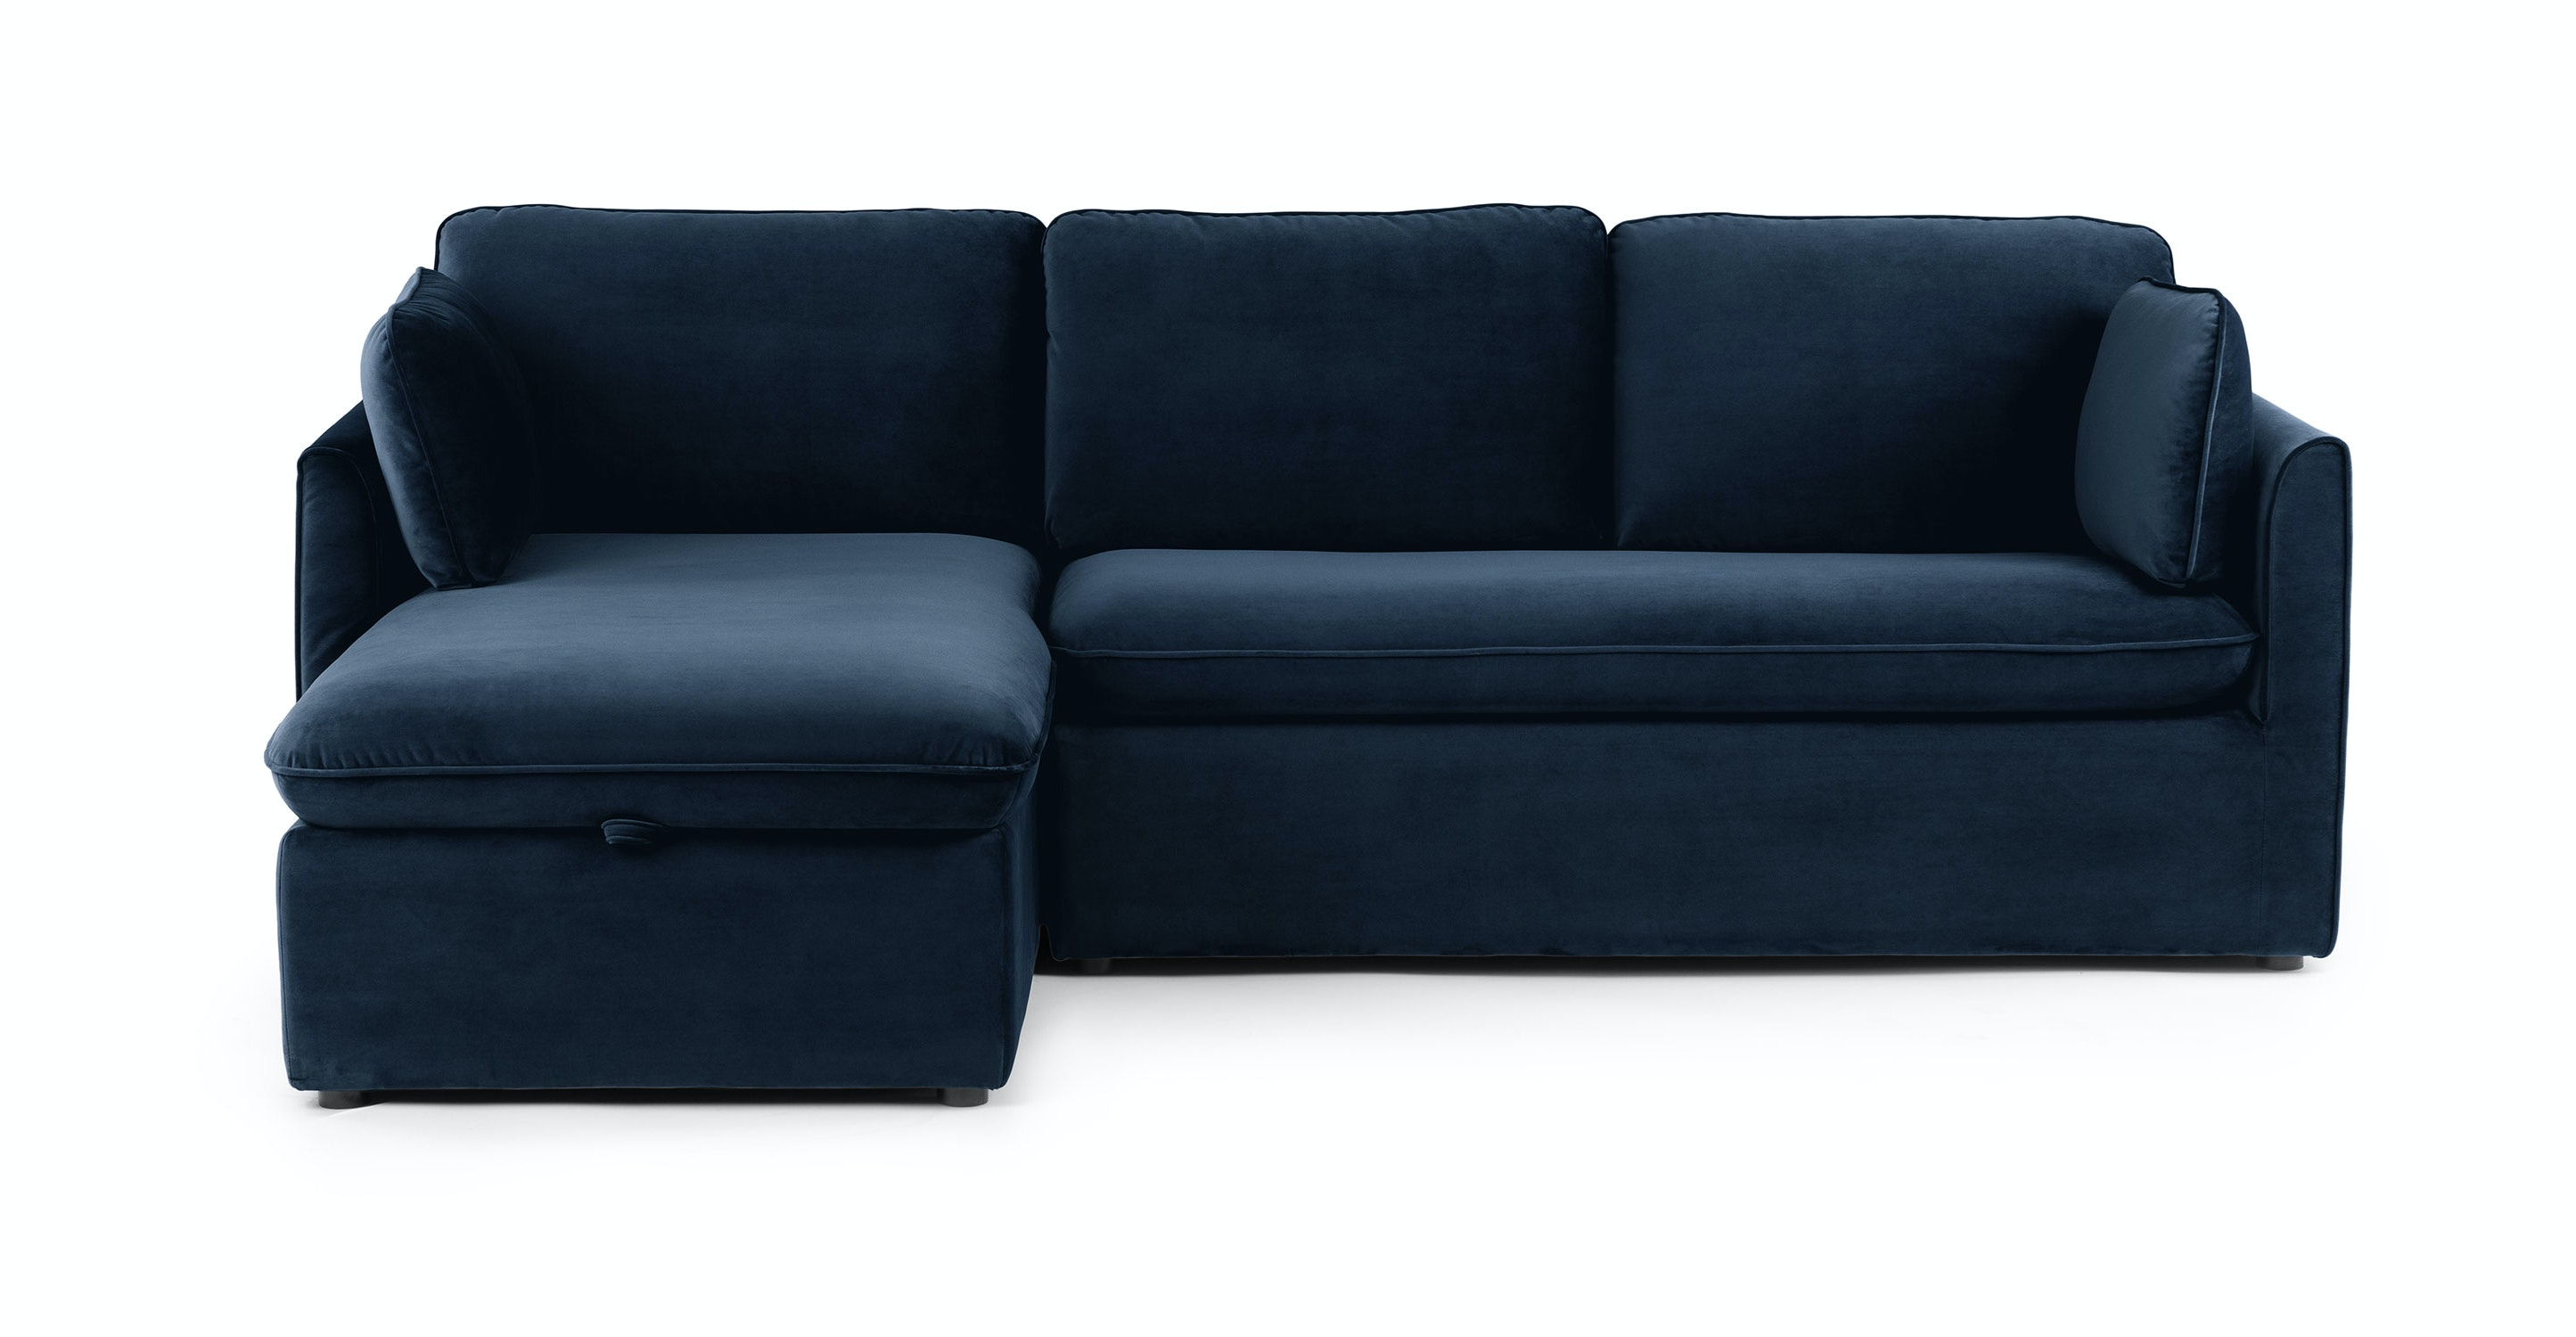 Oneira Tidal Blue Left Sofa Bed | Article